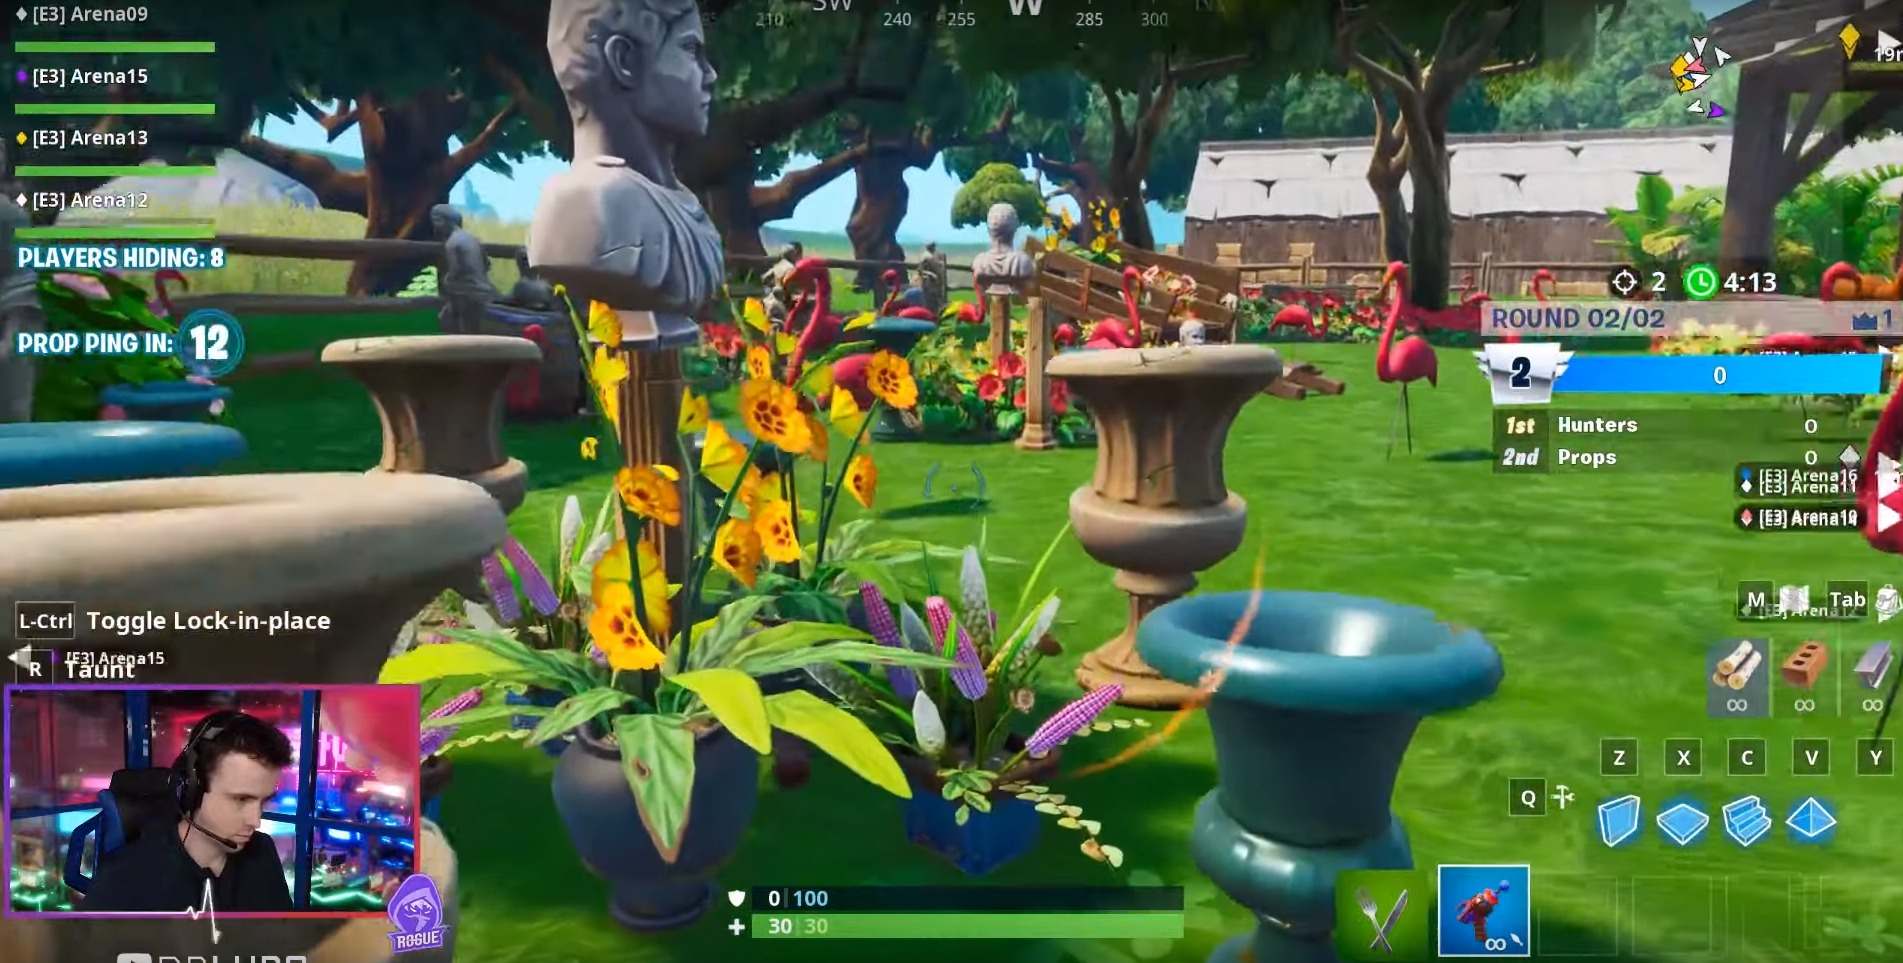 Fortnite's upcoming prop hunt mode has a twist